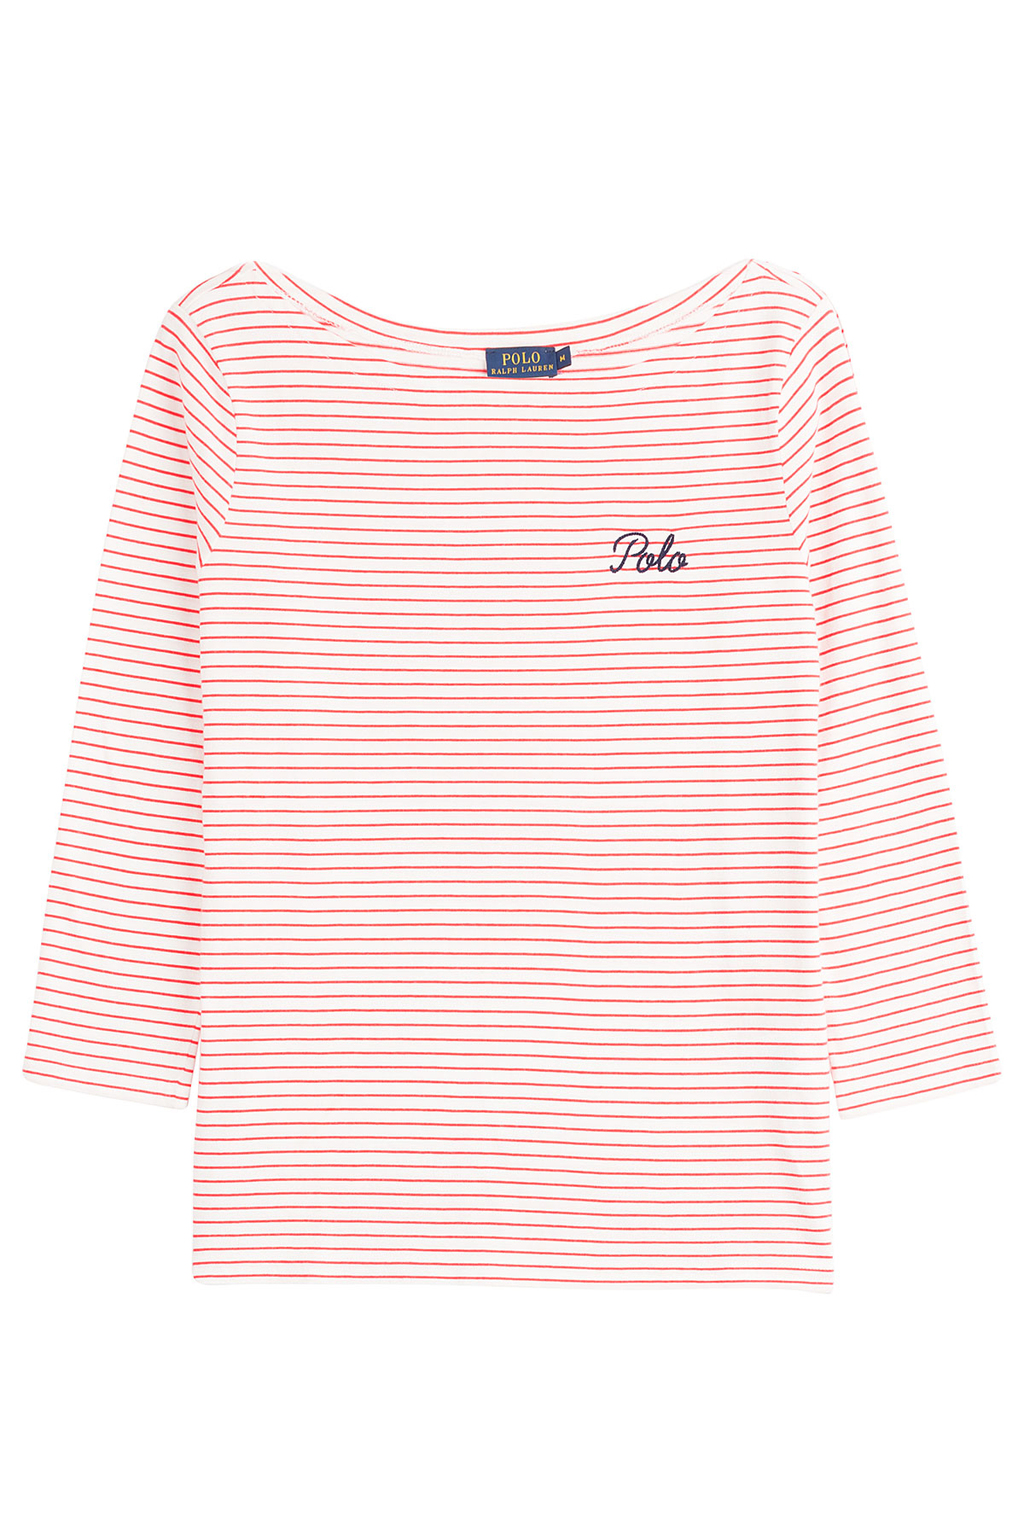 Cotton Boatneck Top Red - neckline: round neck; pattern: horizontal stripes; style: t-shirt; secondary colour: white; predominant colour: coral; occasions: casual, creative work; length: standard; fibres: cotton - 100%; fit: body skimming; sleeve length: 3/4 length; sleeve style: standard; texture group: jersey - clingy; pattern type: fabric; pattern size: standard; embellishment: embroidered; season: s/s 2016; wardrobe: highlight